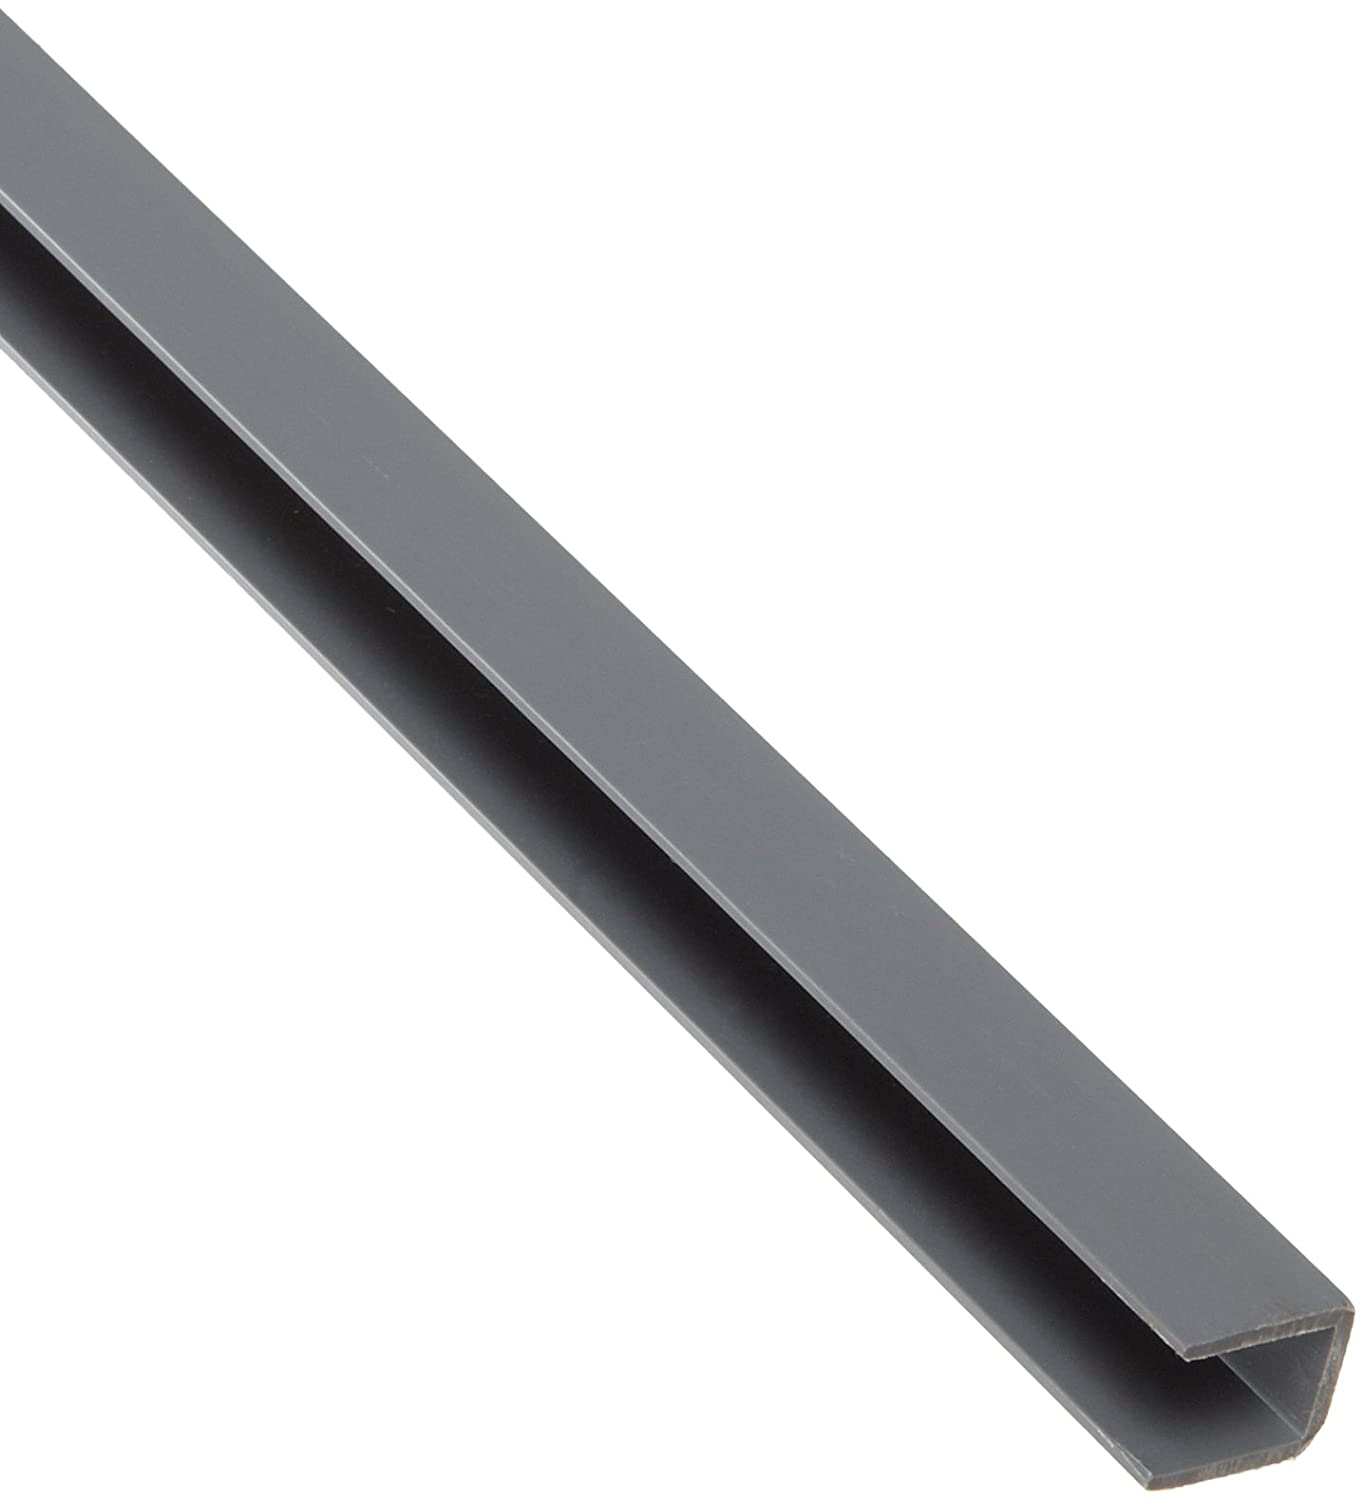 PVC Polyvinyl Super special price Chloride Rigid Ranking integrated 1st place U-Channel Equal Leg Opaque Gray